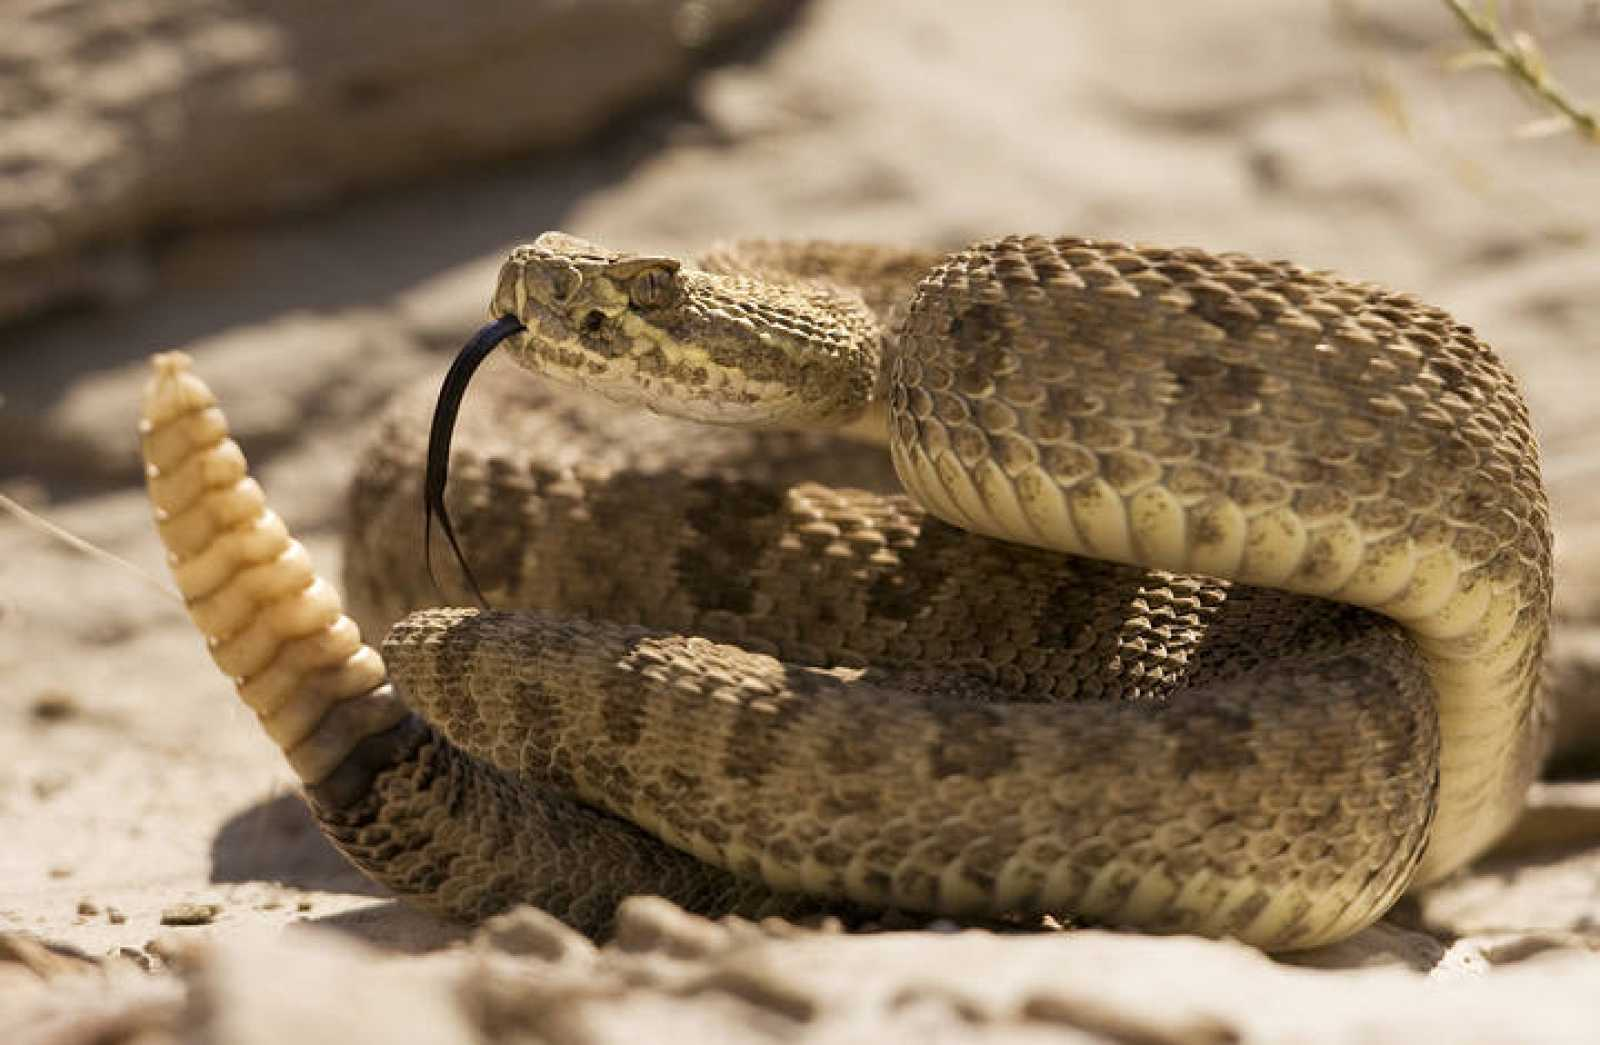 Prairie rattlesnake warns approaching hikers with rattle of his tail in Dinosaur Provincial Park, Alberta.